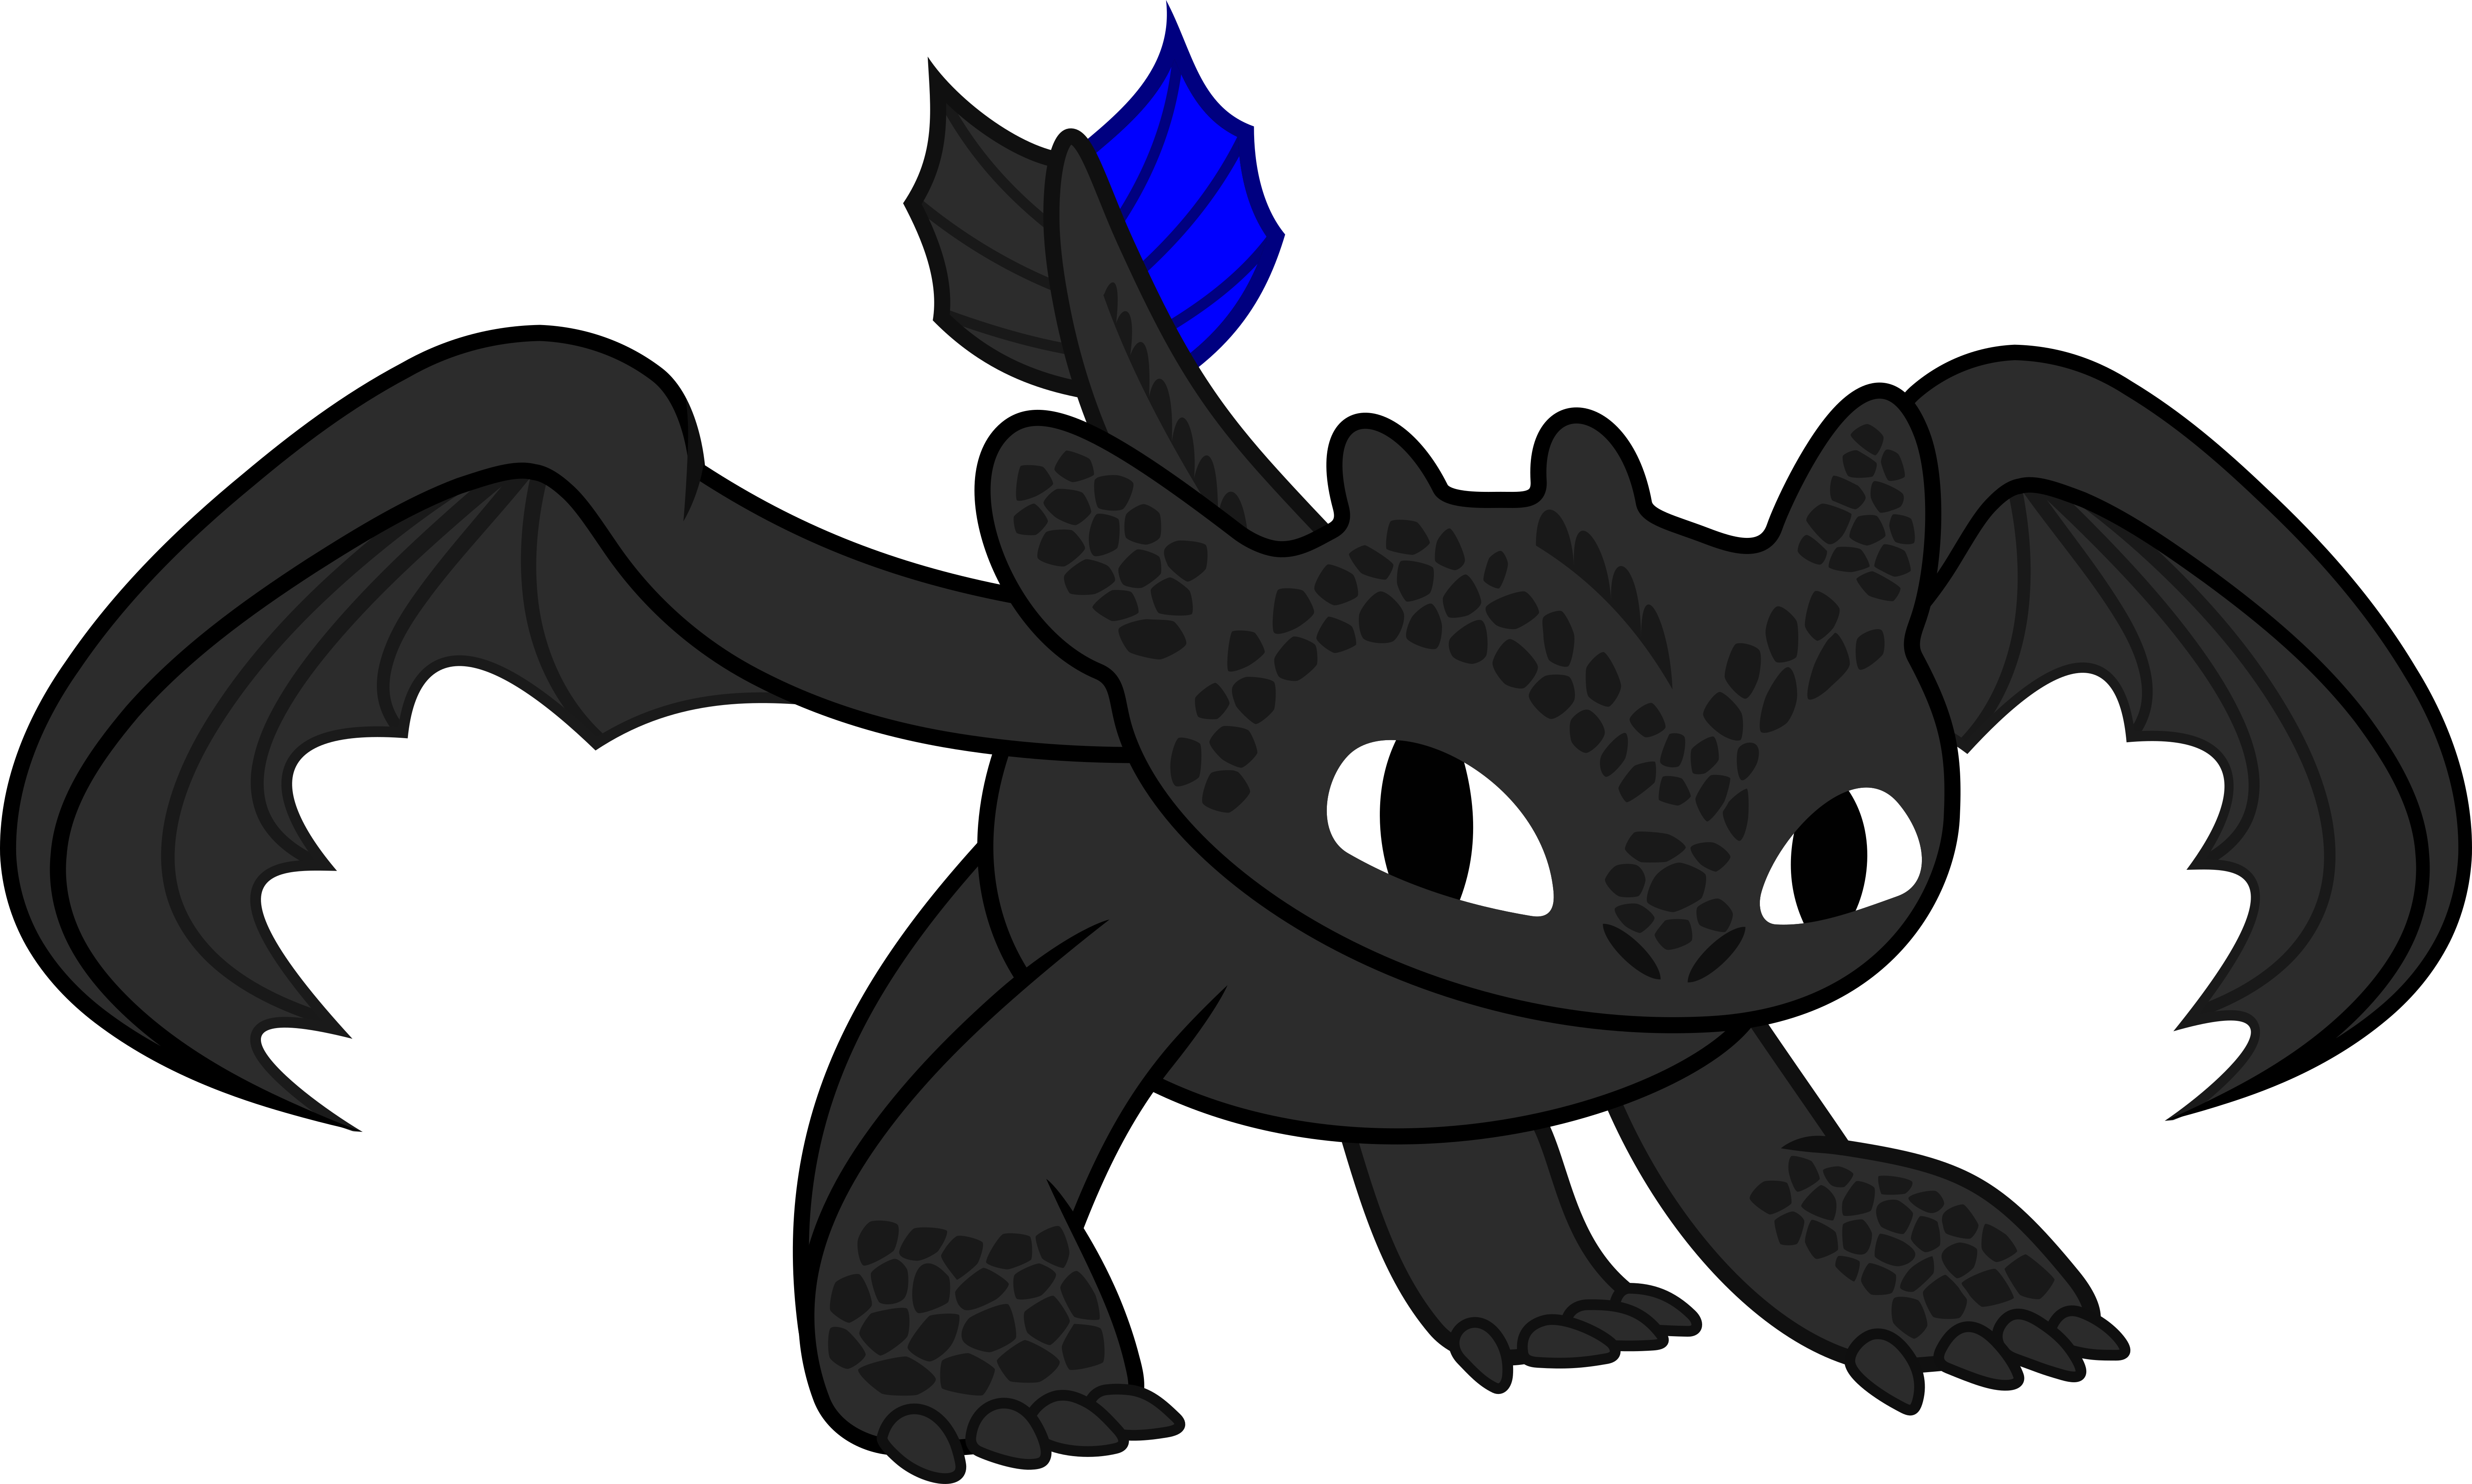 pictures of toothless a fan picture of toothless school of dragons how to pictures toothless of